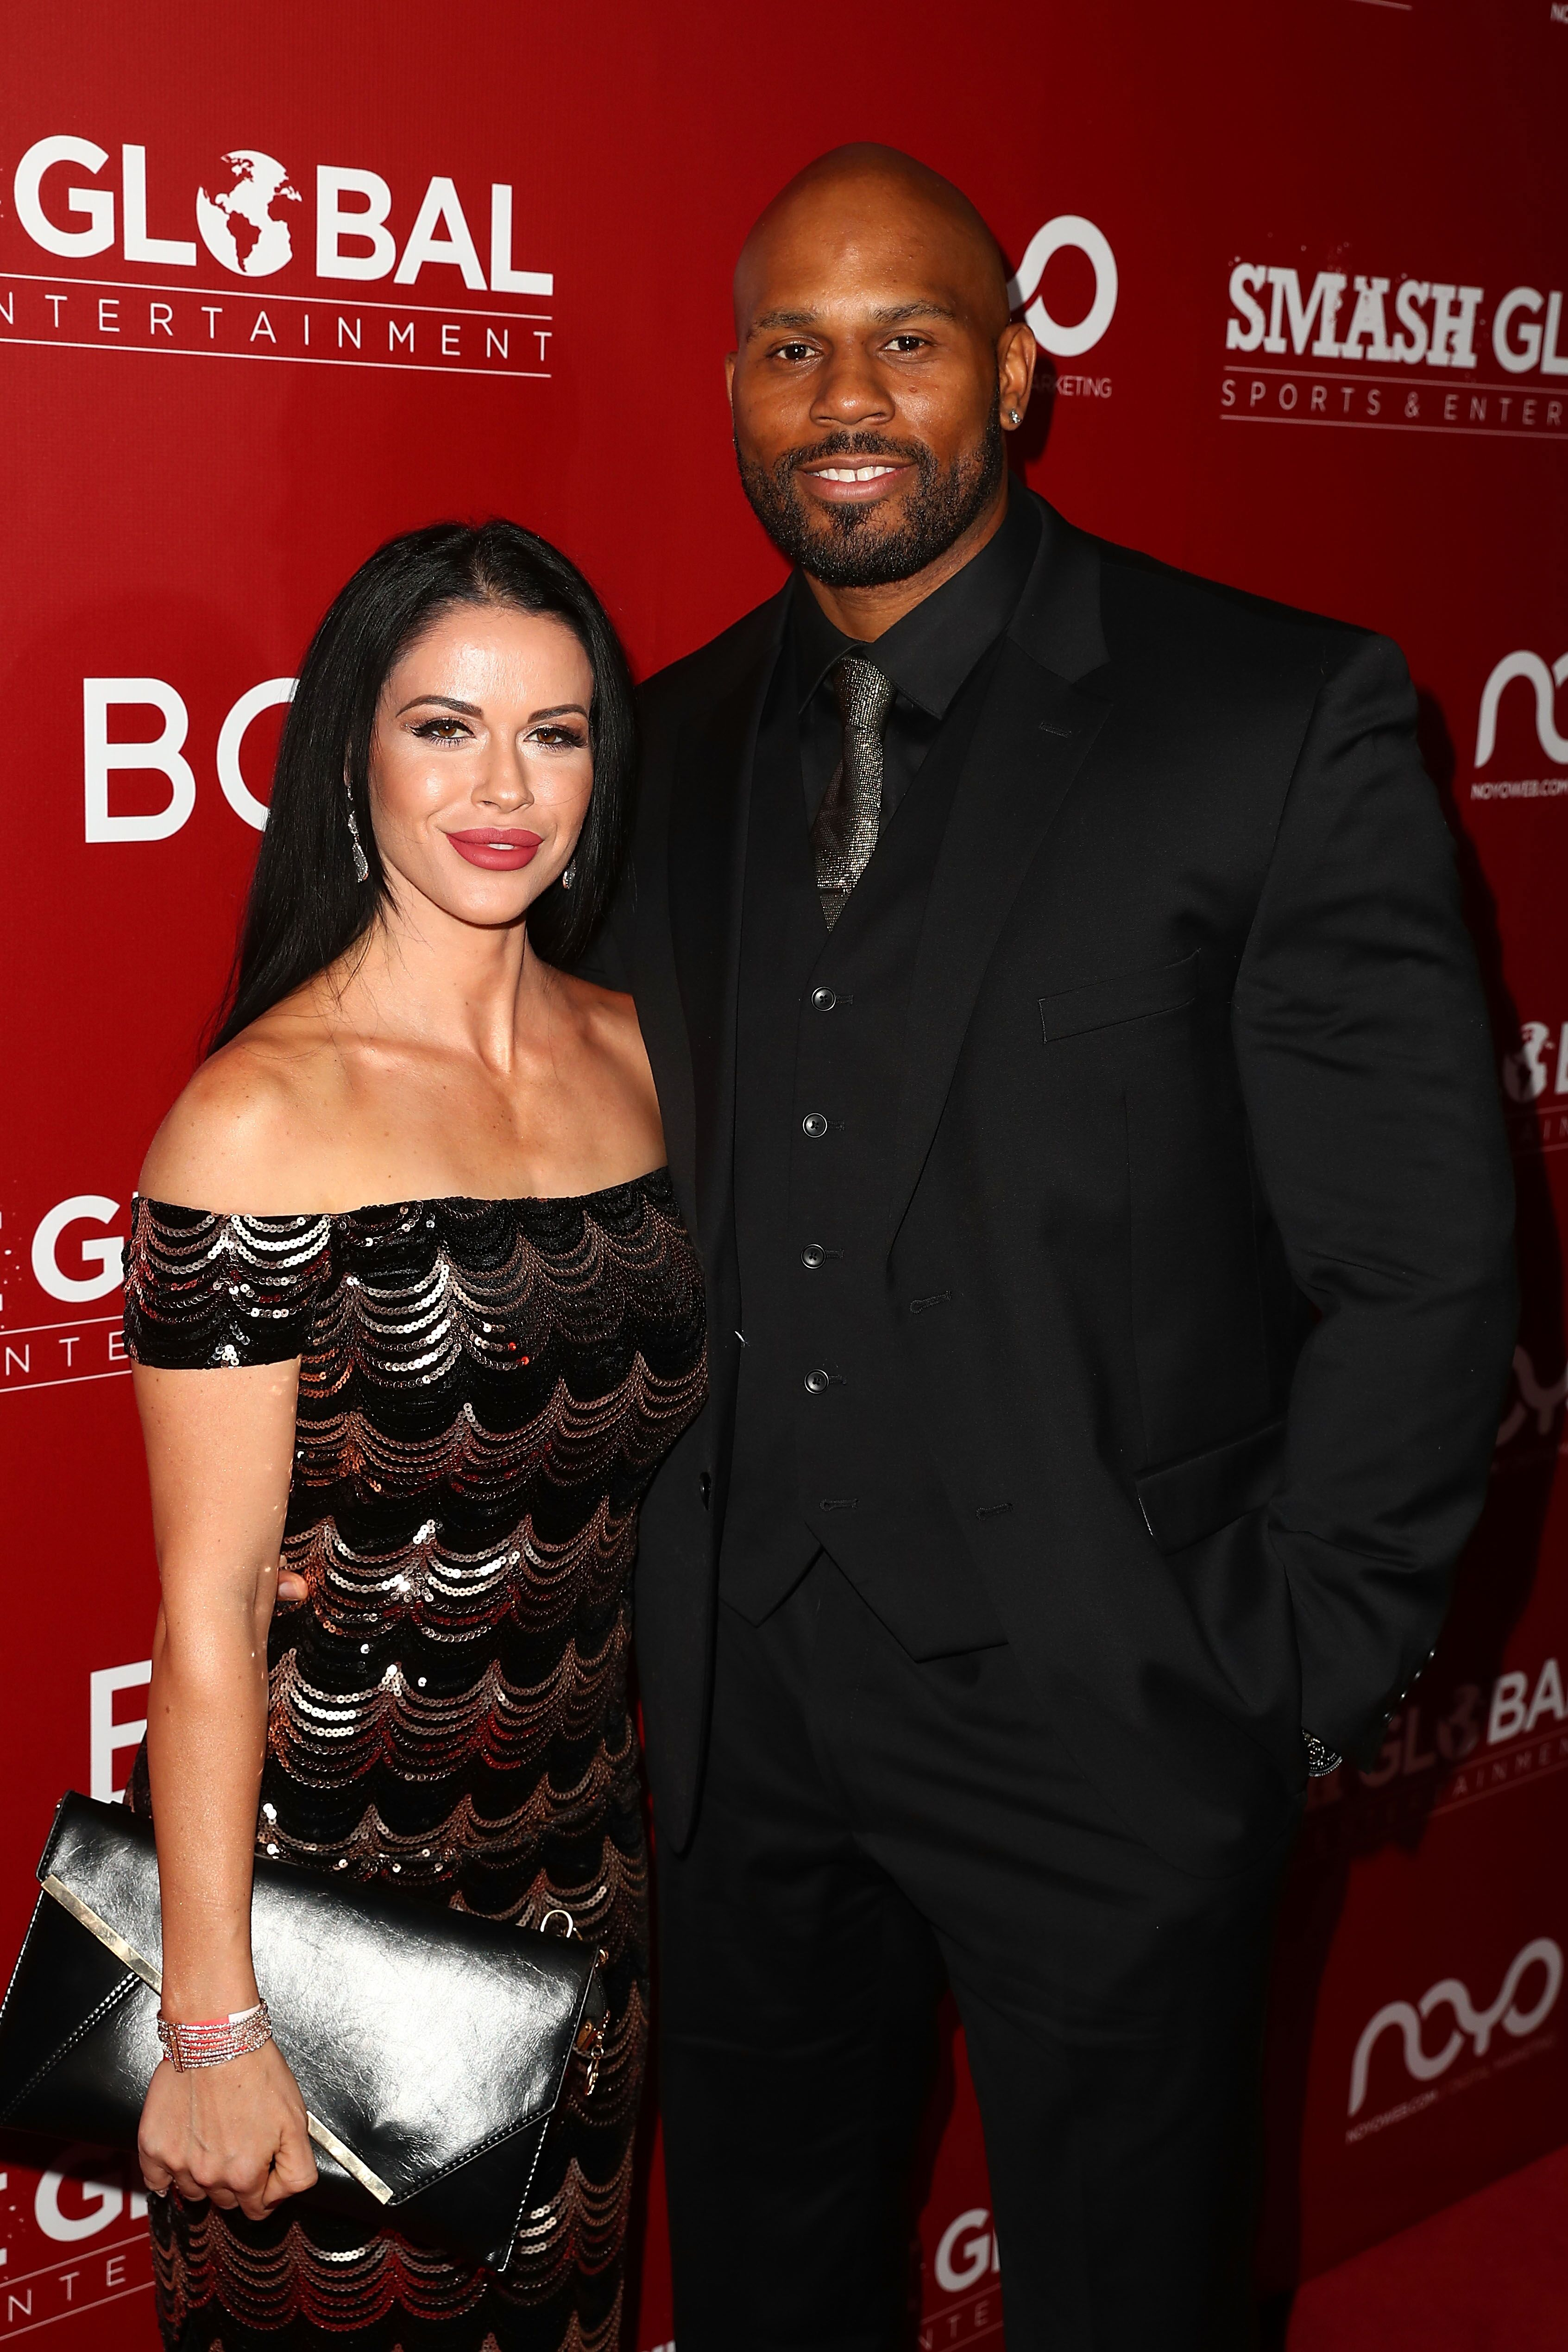 Shad Gaspard and his wifeSiliana Gaspard arrive on the red carpet at theSMASH Global Night Of Champions on December 13, 2018, in Hollywood, California | Source: Joe Scarnici/Getty Images